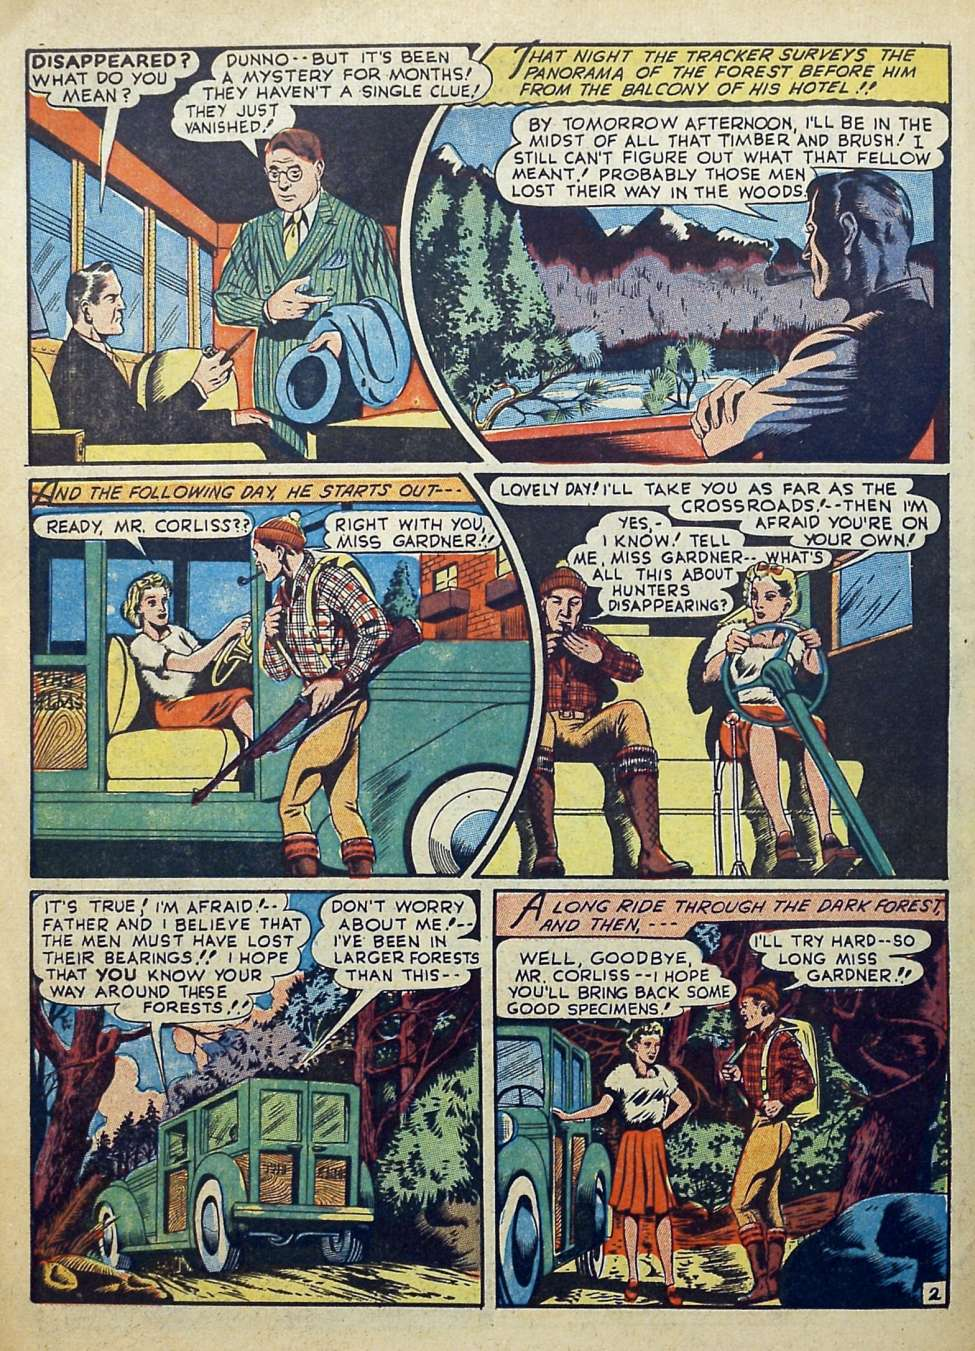 Suspense Comics #3 from 1944 46